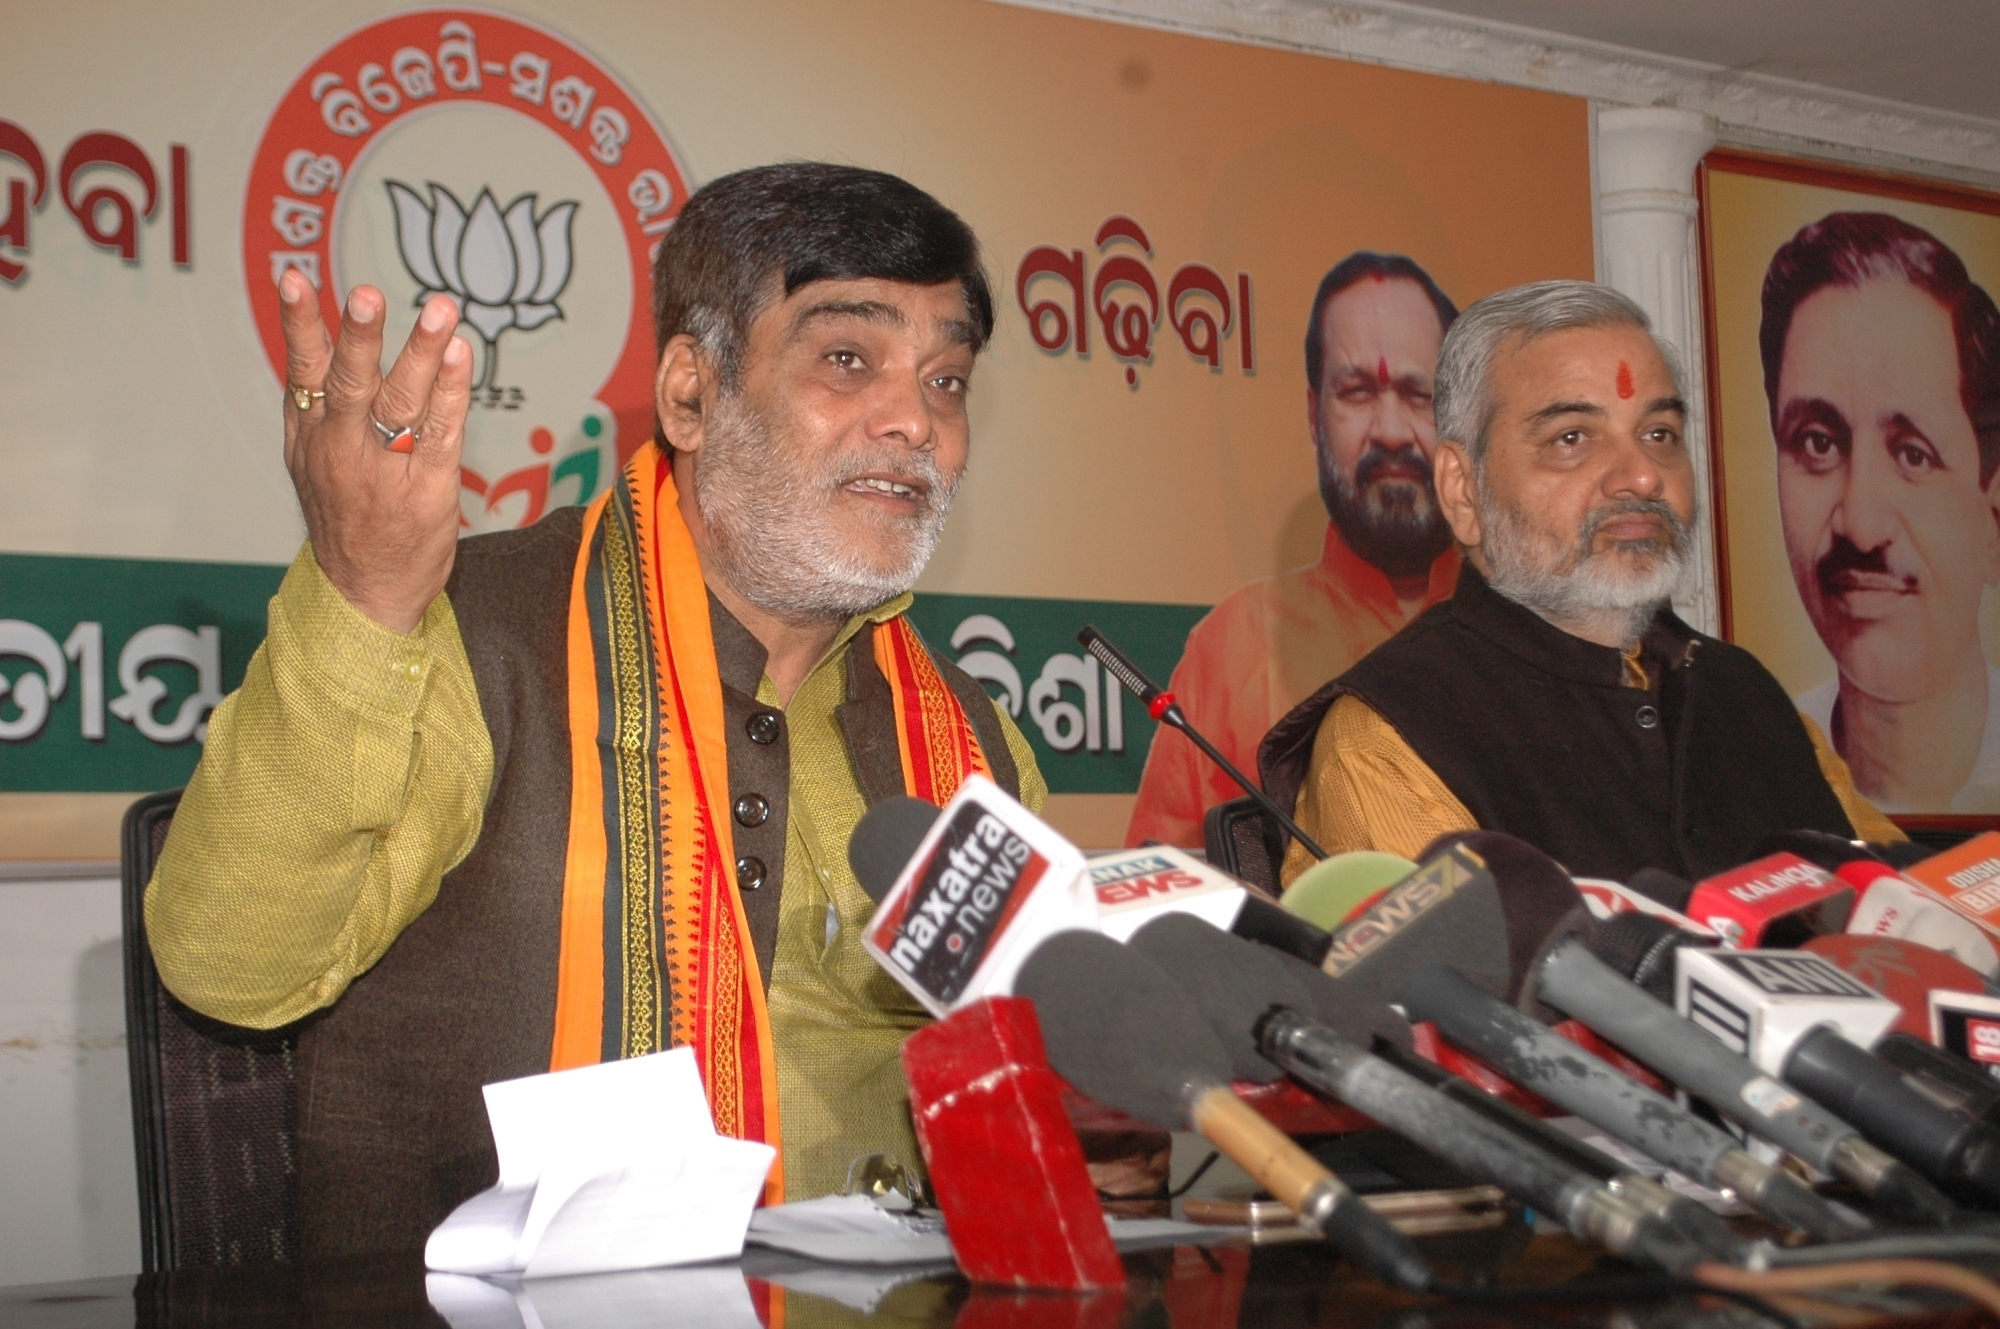 Bhubaneswar: Union Minister and BJP leader Ram Kripal Yadav addresses a press conference in Bhubaneswar on Feb 13, 2017. (Photo: IANS)